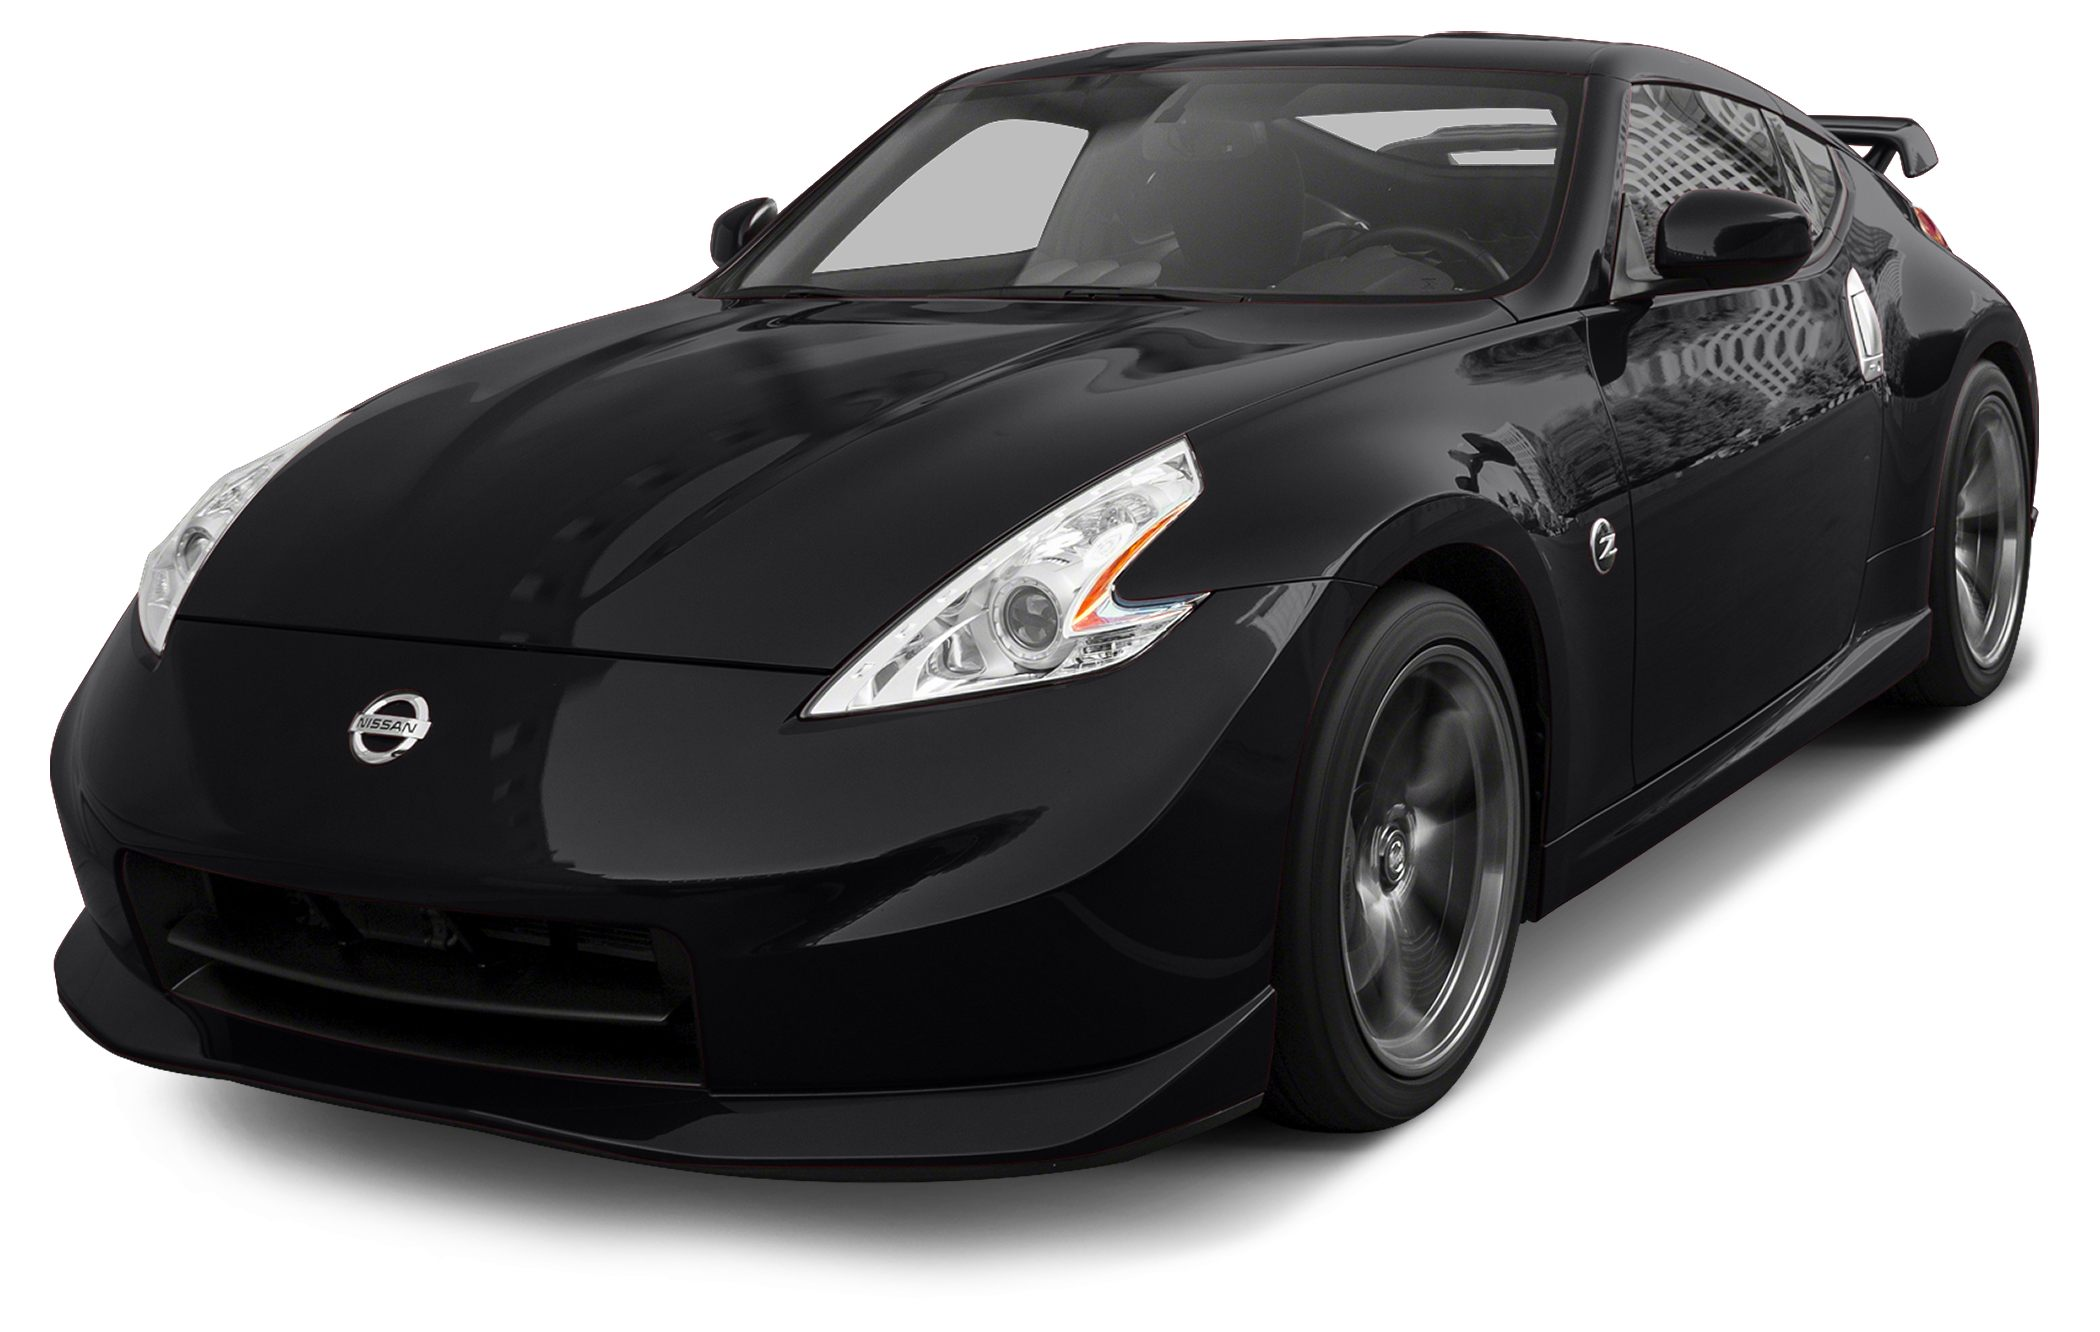 2014 Nissan 370Z NISMO New Arrival LOW MILES This 2014 Nissan 370Z NISMO will sell fast -Auto Cl